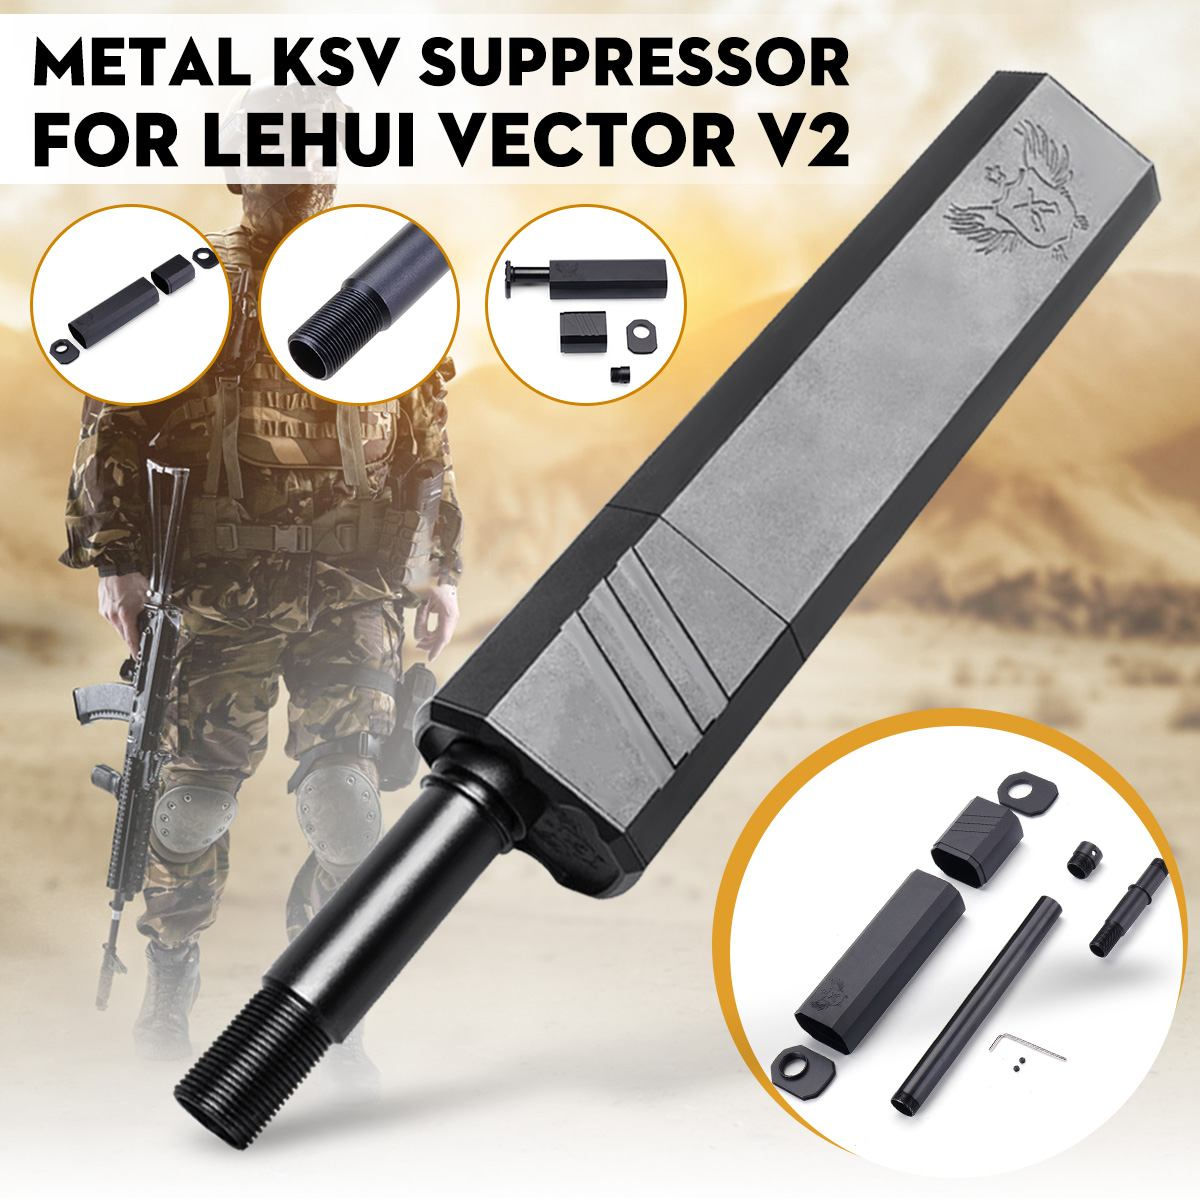 Metal Black KSV Mock Suppressor For LeHui Vector V2 Water Gel Ball Replacement Accessories